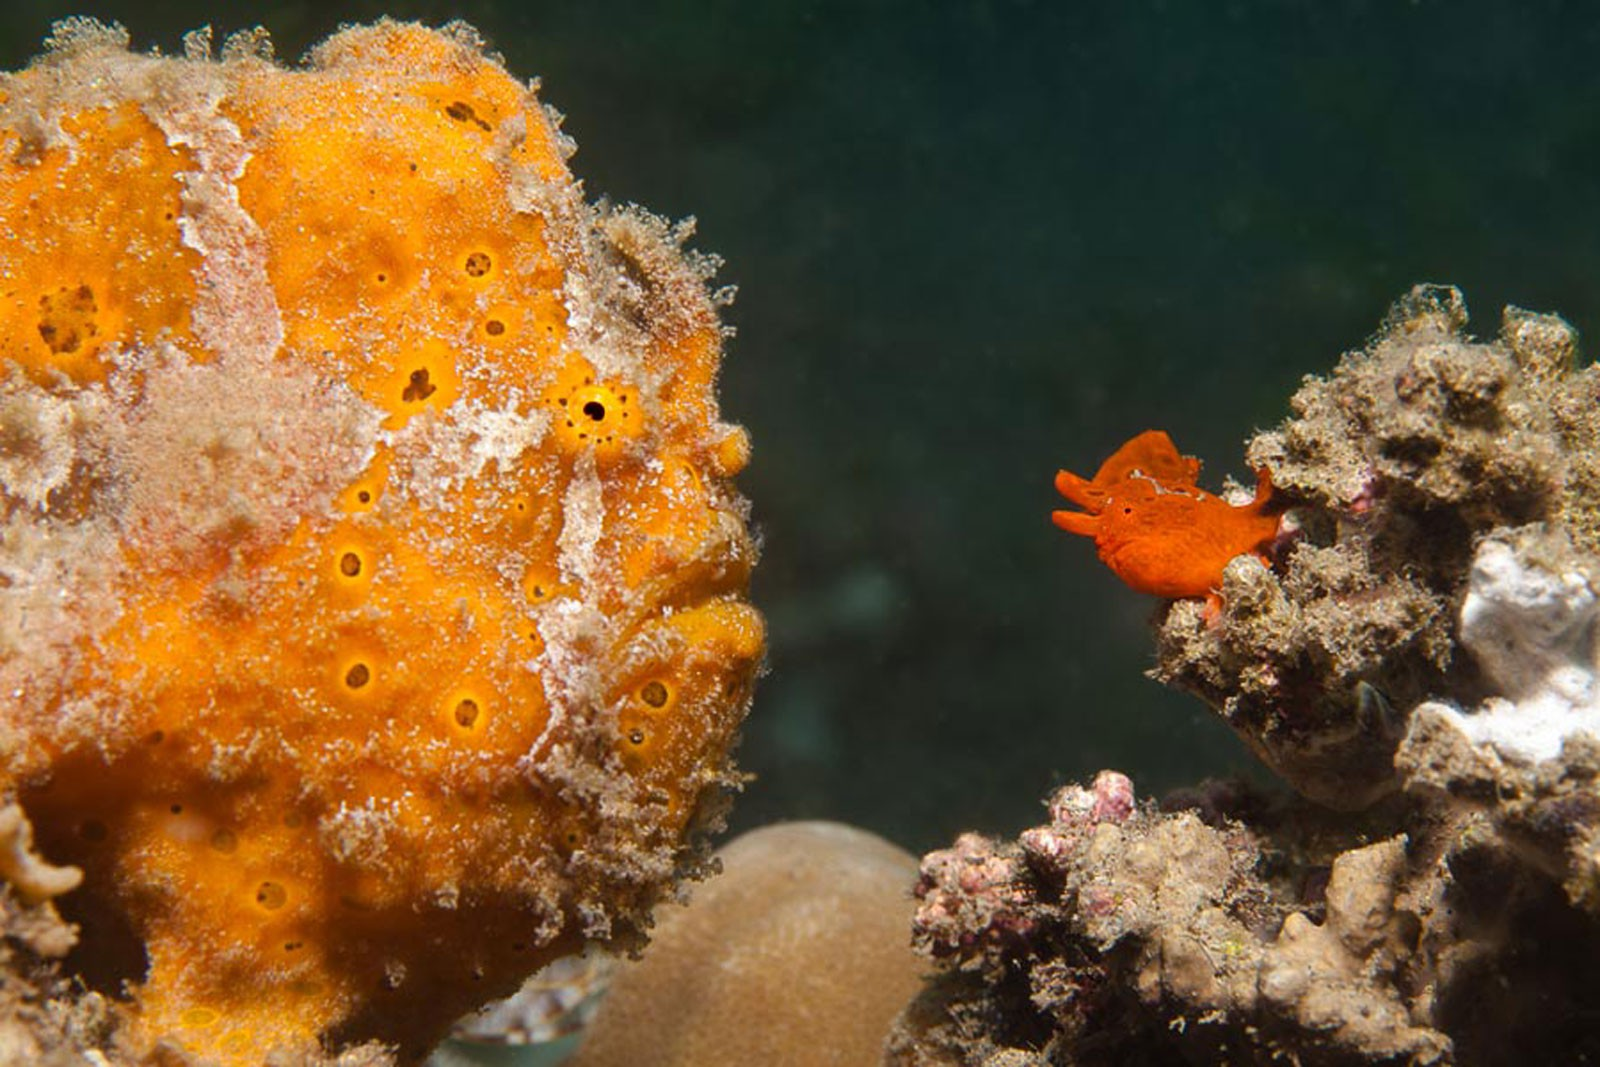 Frogfish – teaching swimming or catching, photo: Juergen Steffen (April 2014)